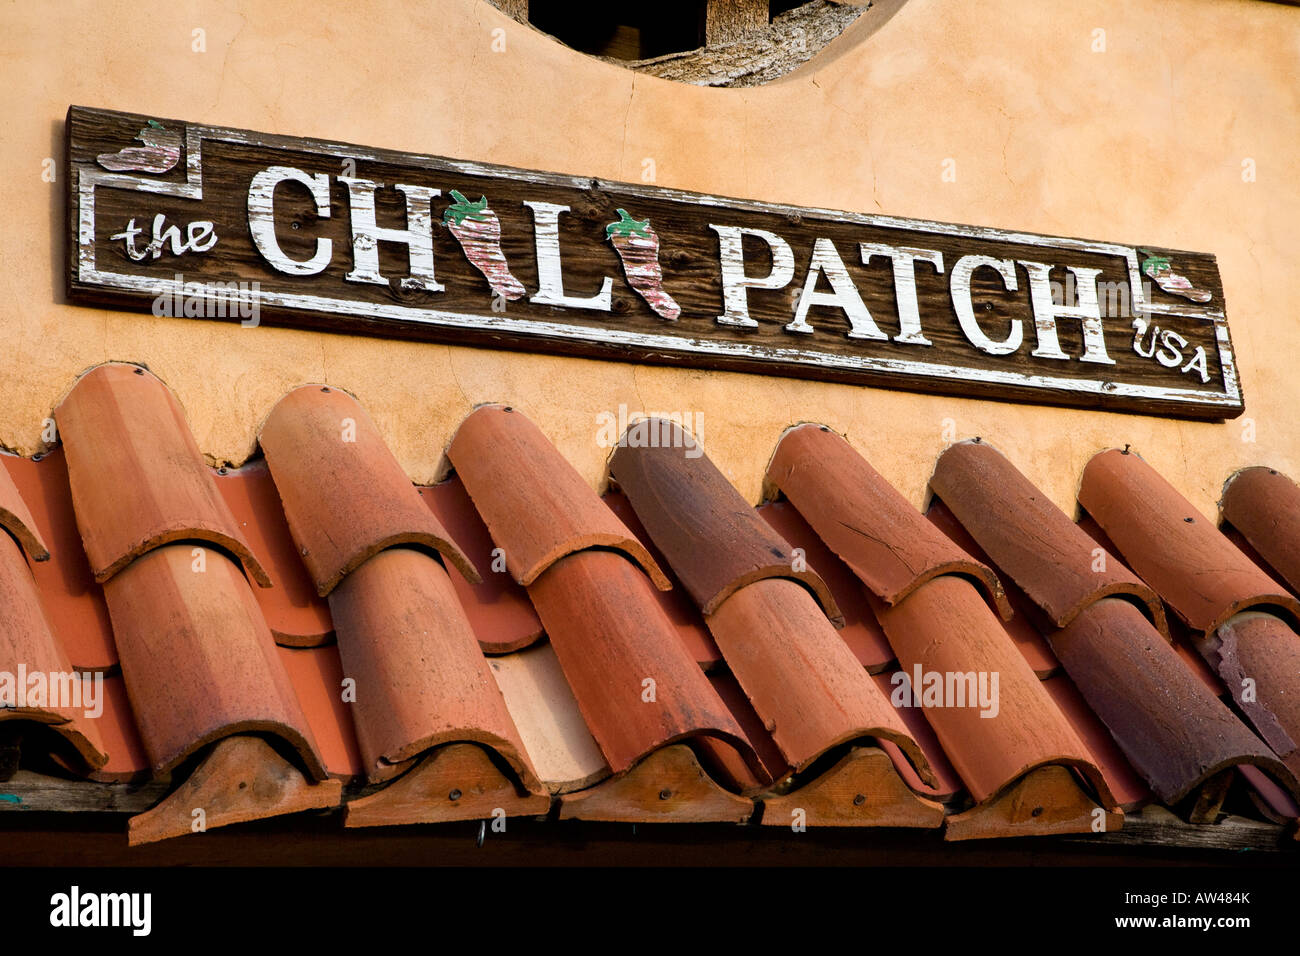 Red Mexican Roof Tiles Albuquerque New Mexico & Red Mexican Roof Tiles Albuquerque New Mexico Stock Photo ... memphite.com